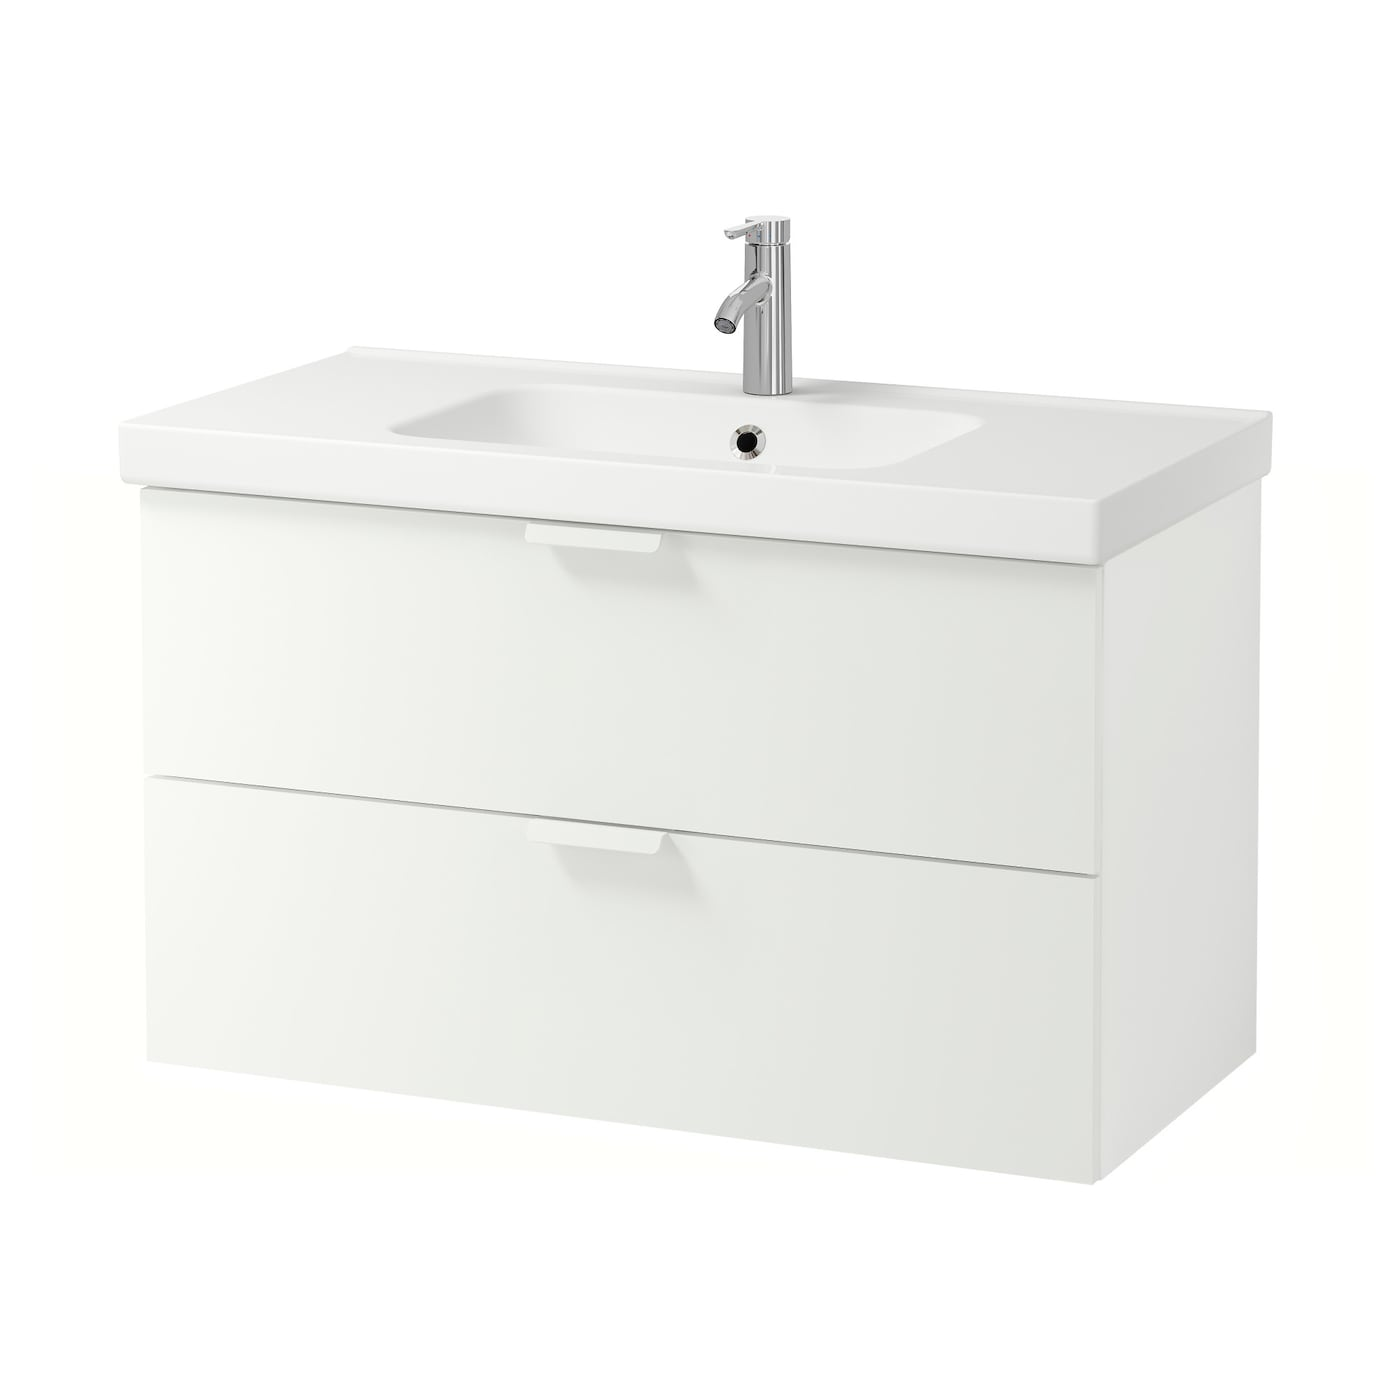 odensvik godmorgon wash stand with 2 drawers white 103 x 49 x 64 cm ikea. Black Bedroom Furniture Sets. Home Design Ideas